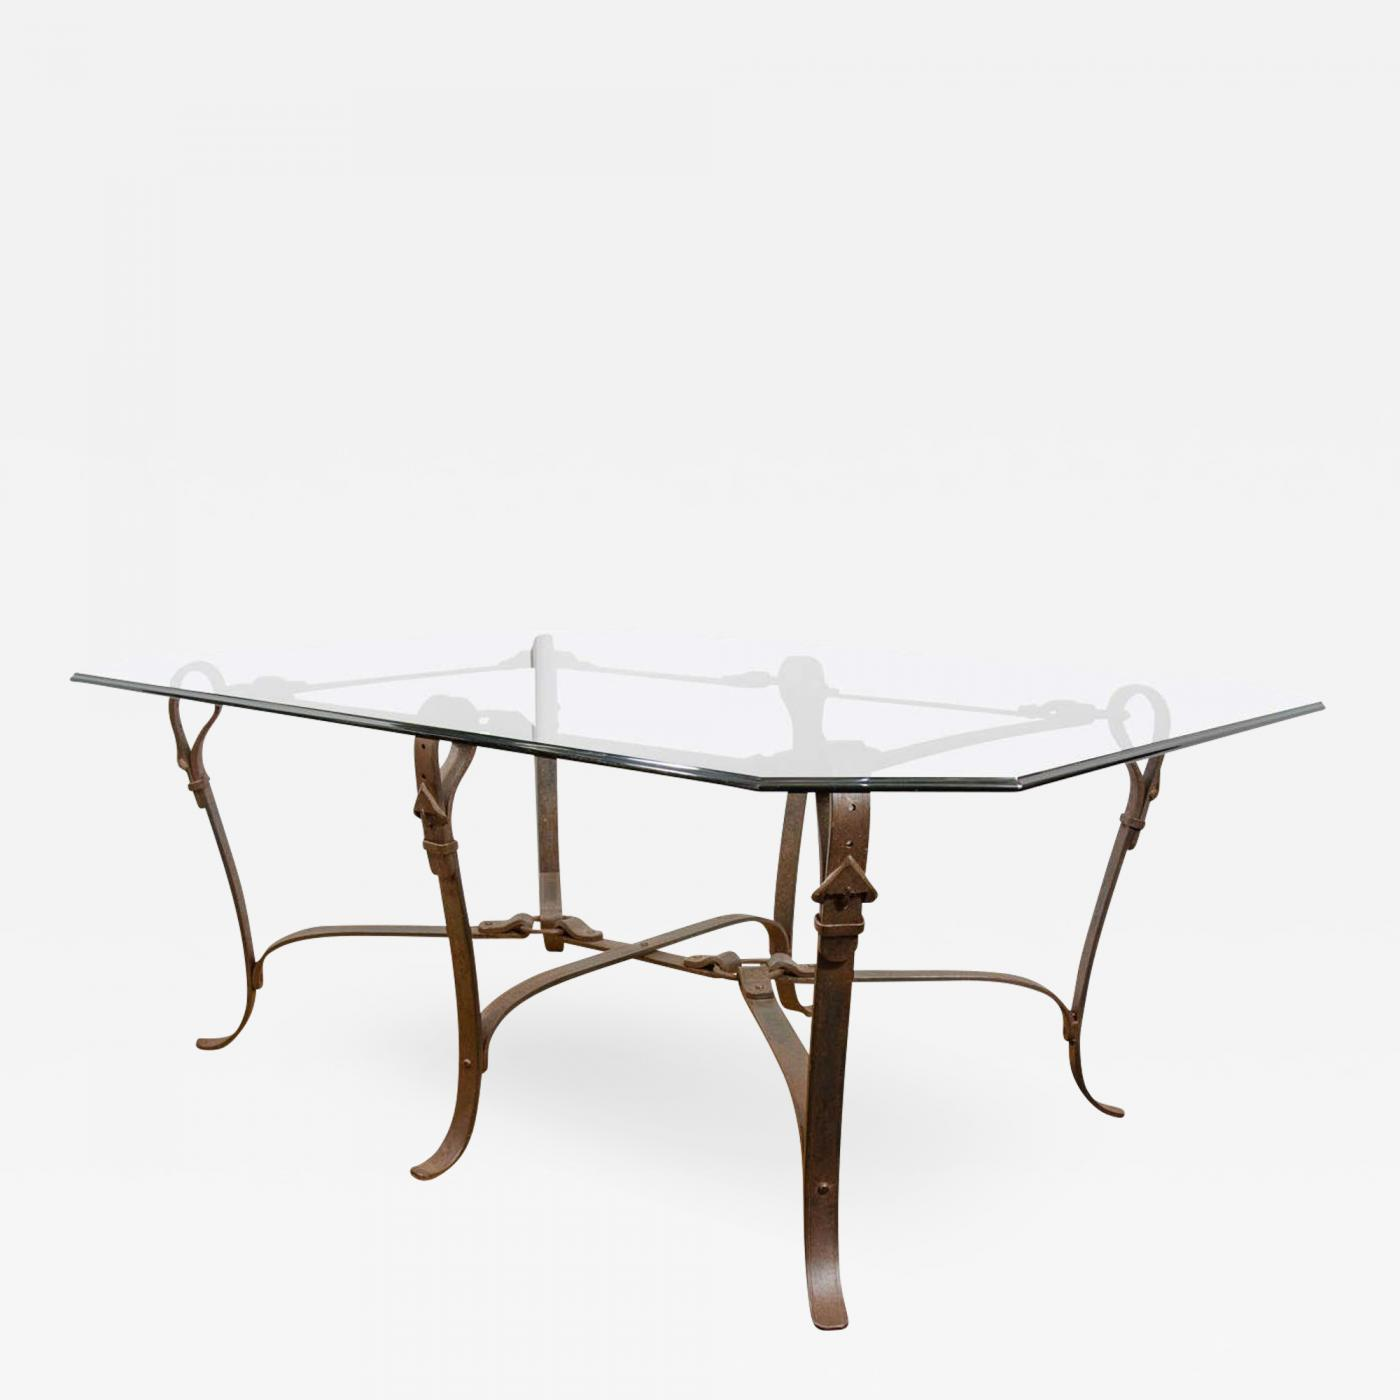 Strange Gucci Stunning Modernist Gucci Influenced Equestrian Hand Forged Iron Table Pabps2019 Chair Design Images Pabps2019Com